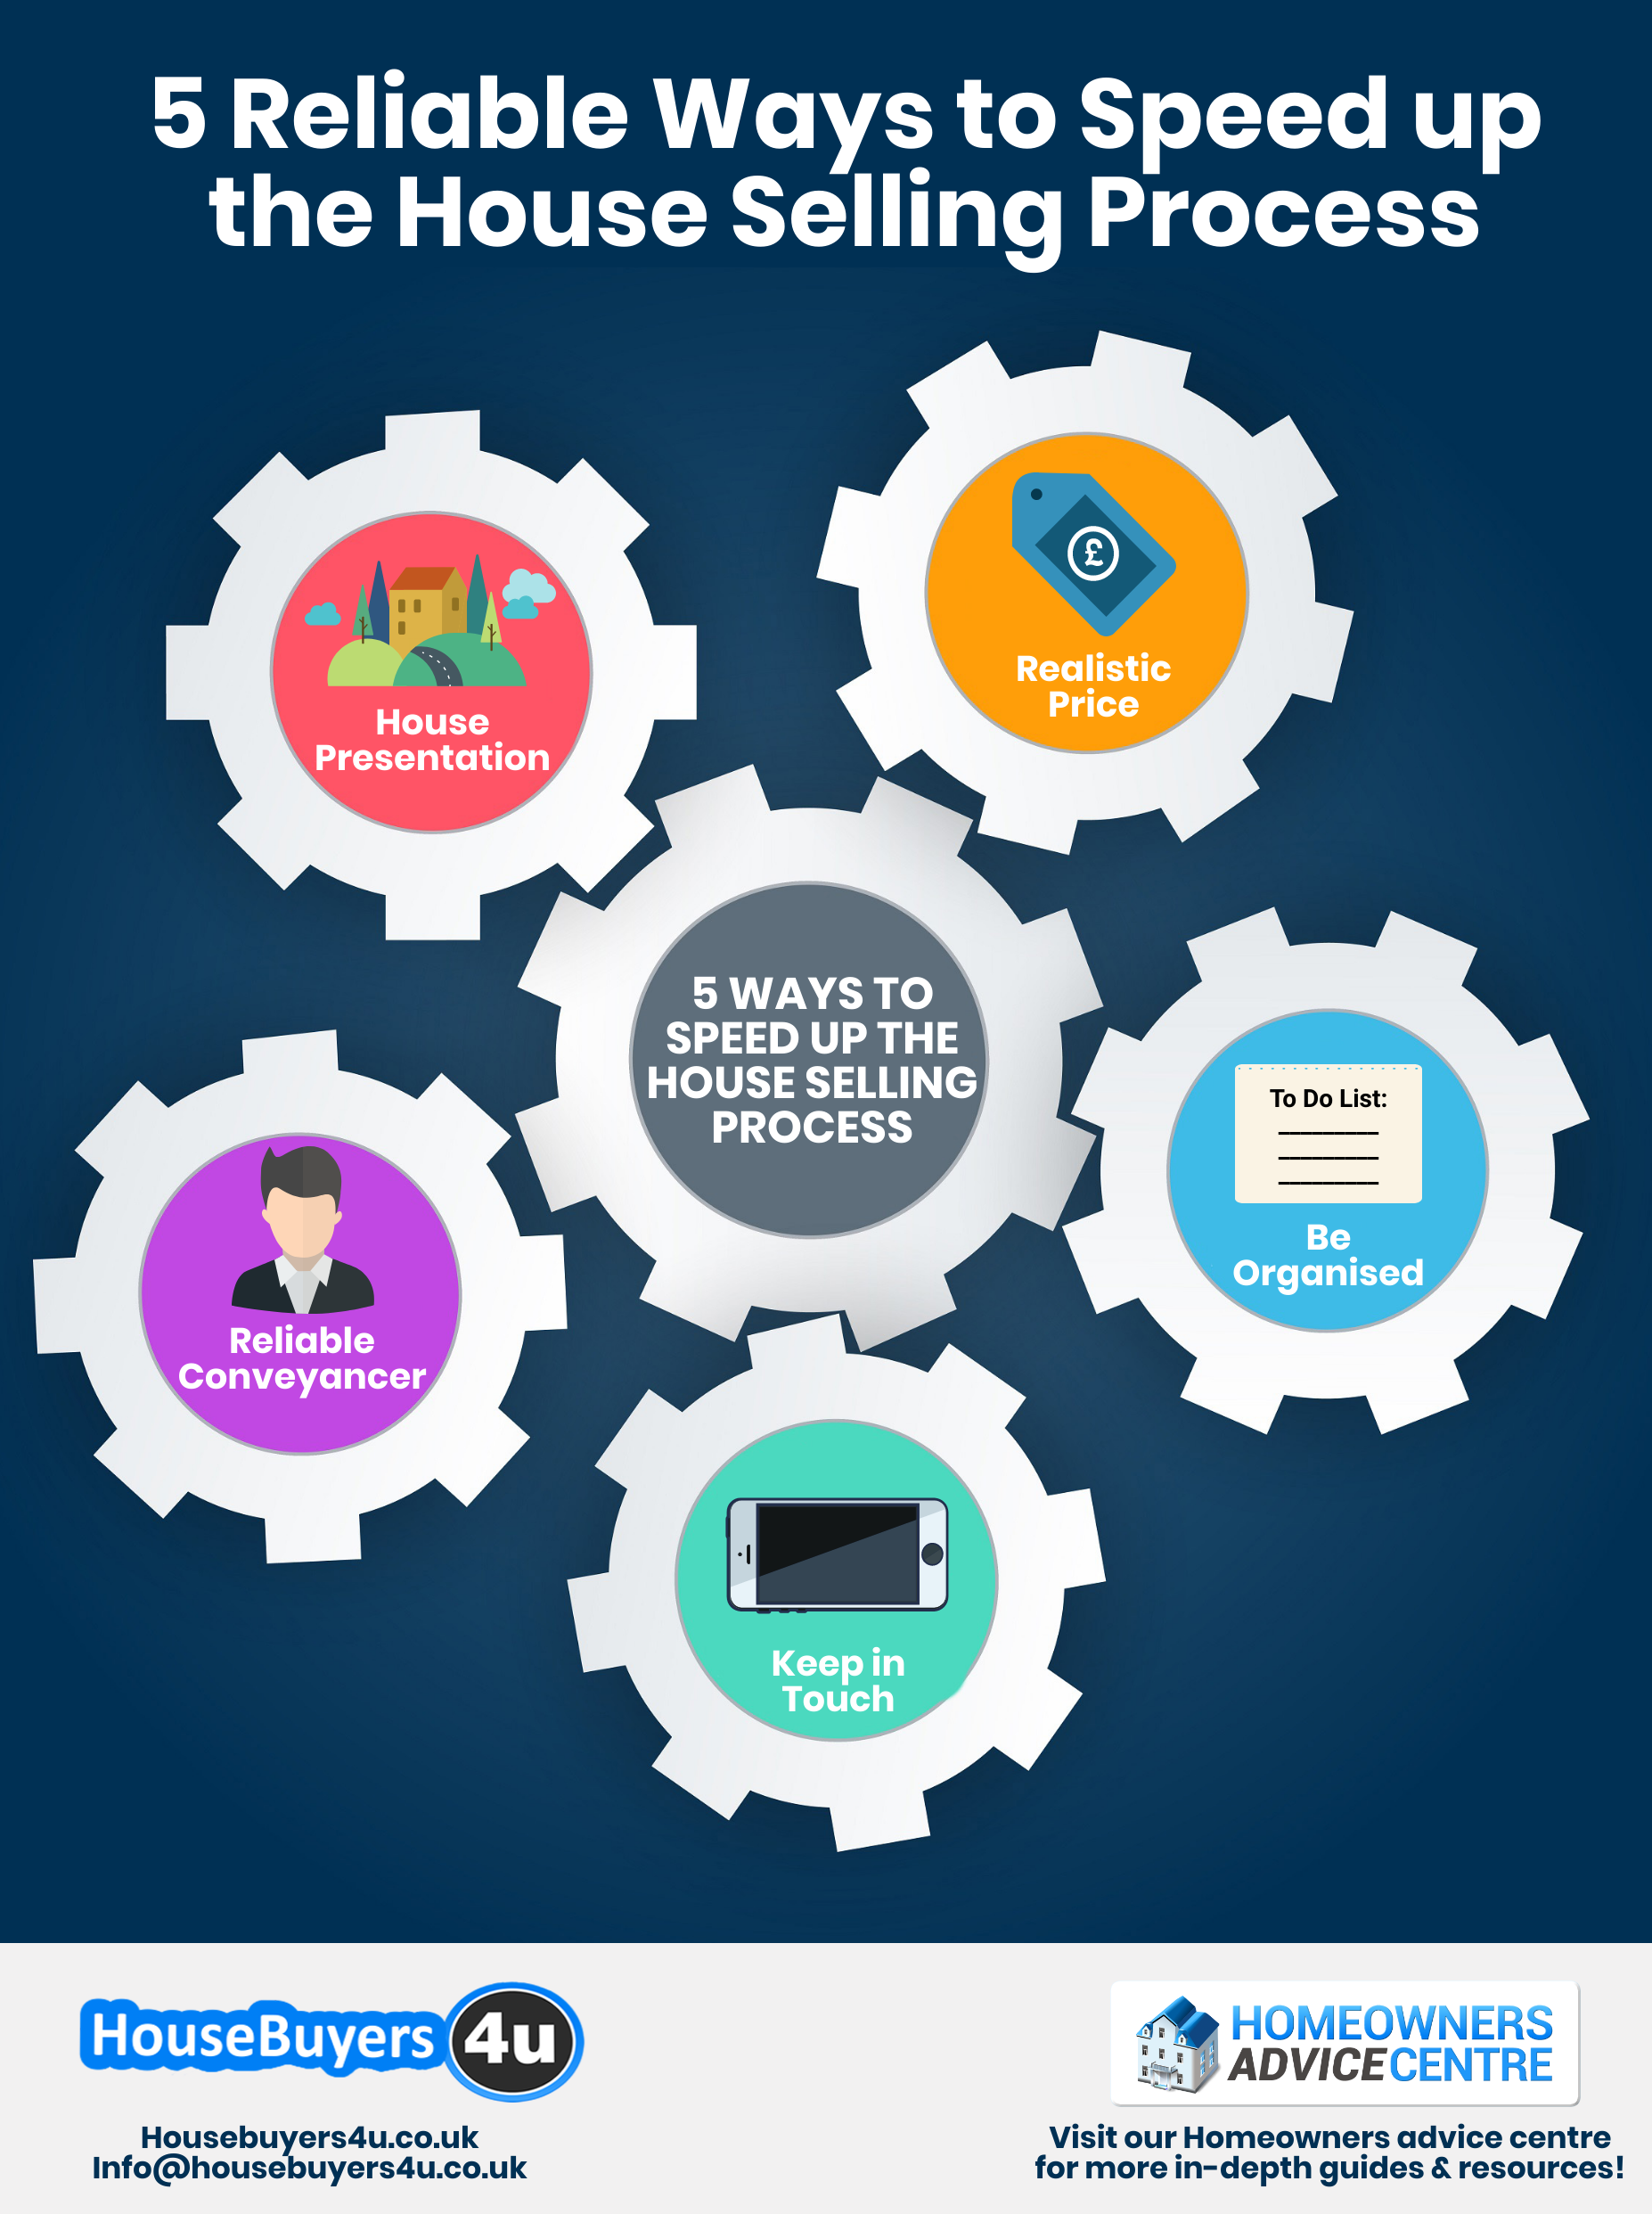 An infographic of 5 reliable ways you can speed up the house selling process